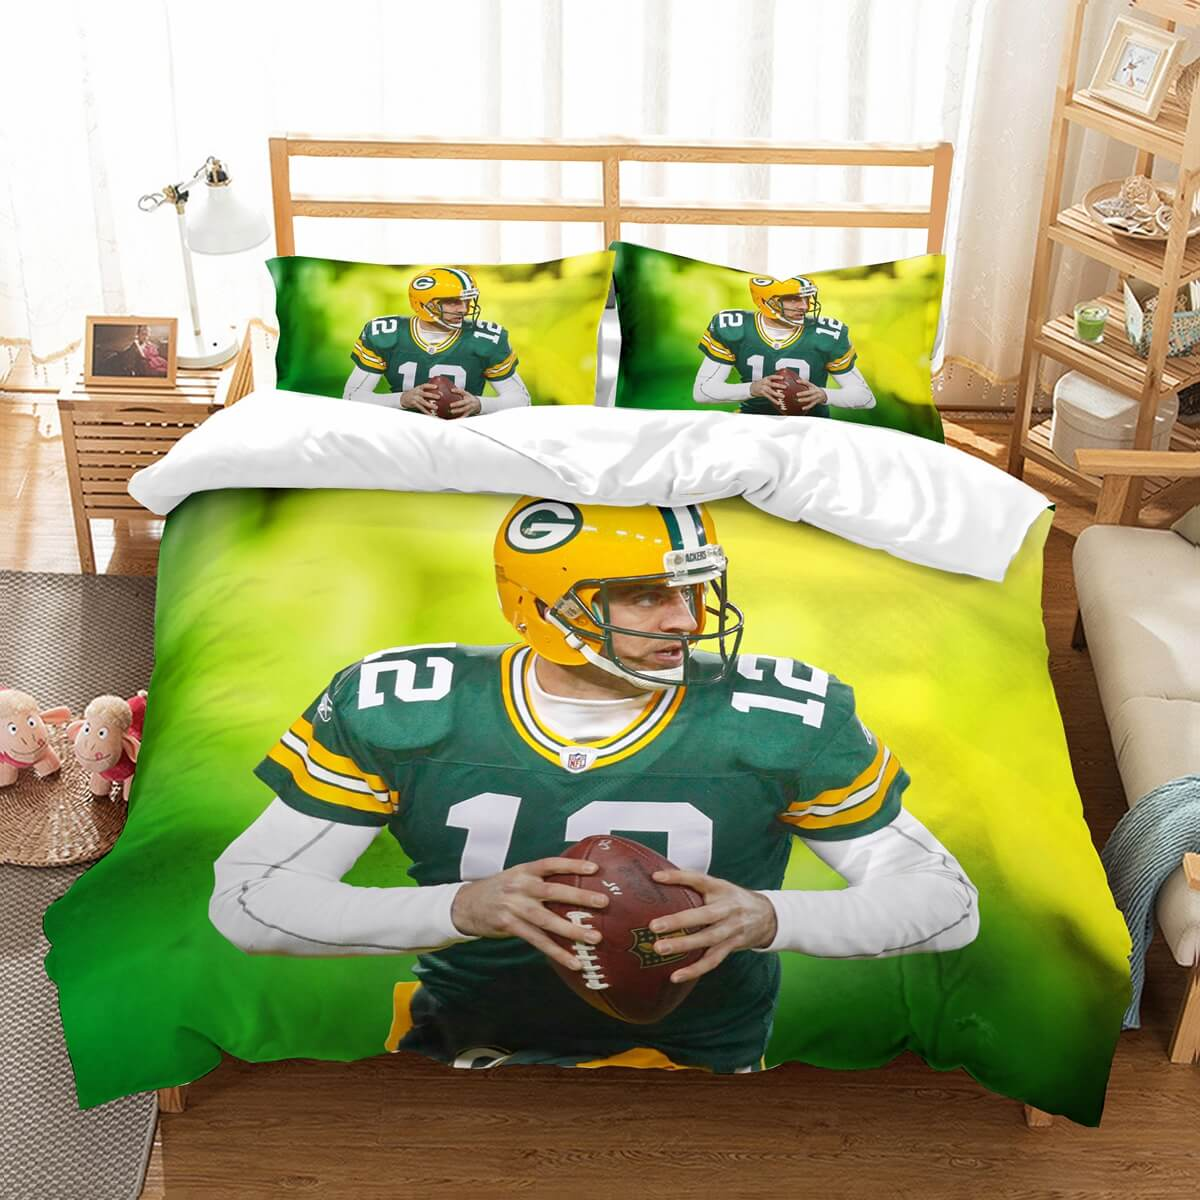 3D Customize Aaron Rodgers Green Bay Packers Bedding Set Duvet Cover Set Bedroom Set Bedlinen